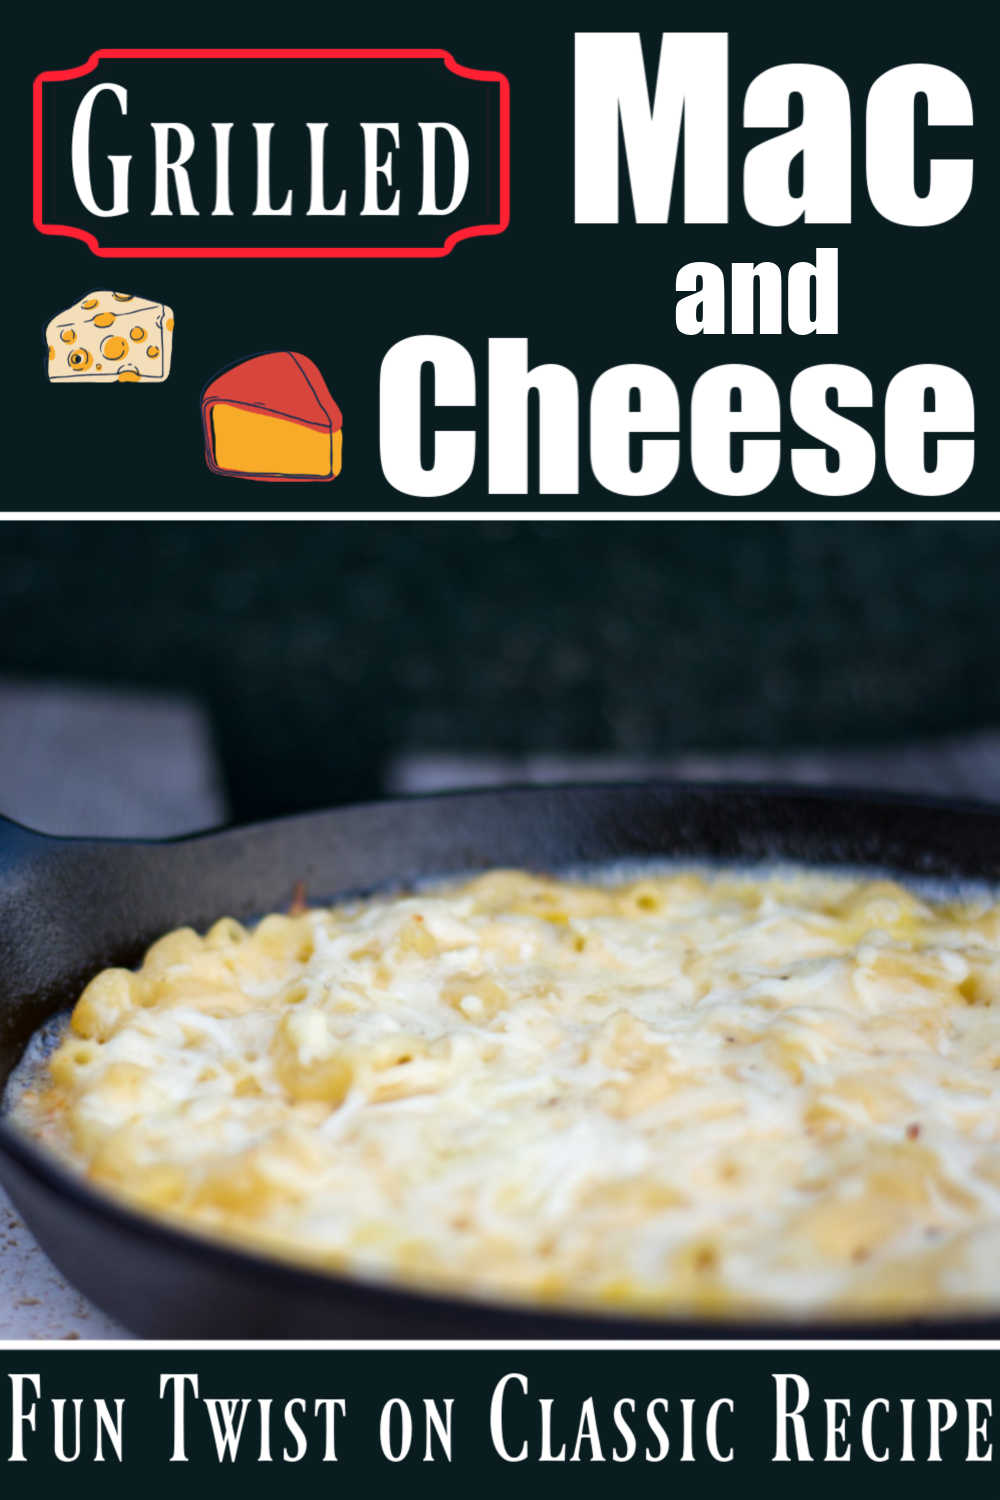 Grilled Mac and Cheese - A Classic Recipe